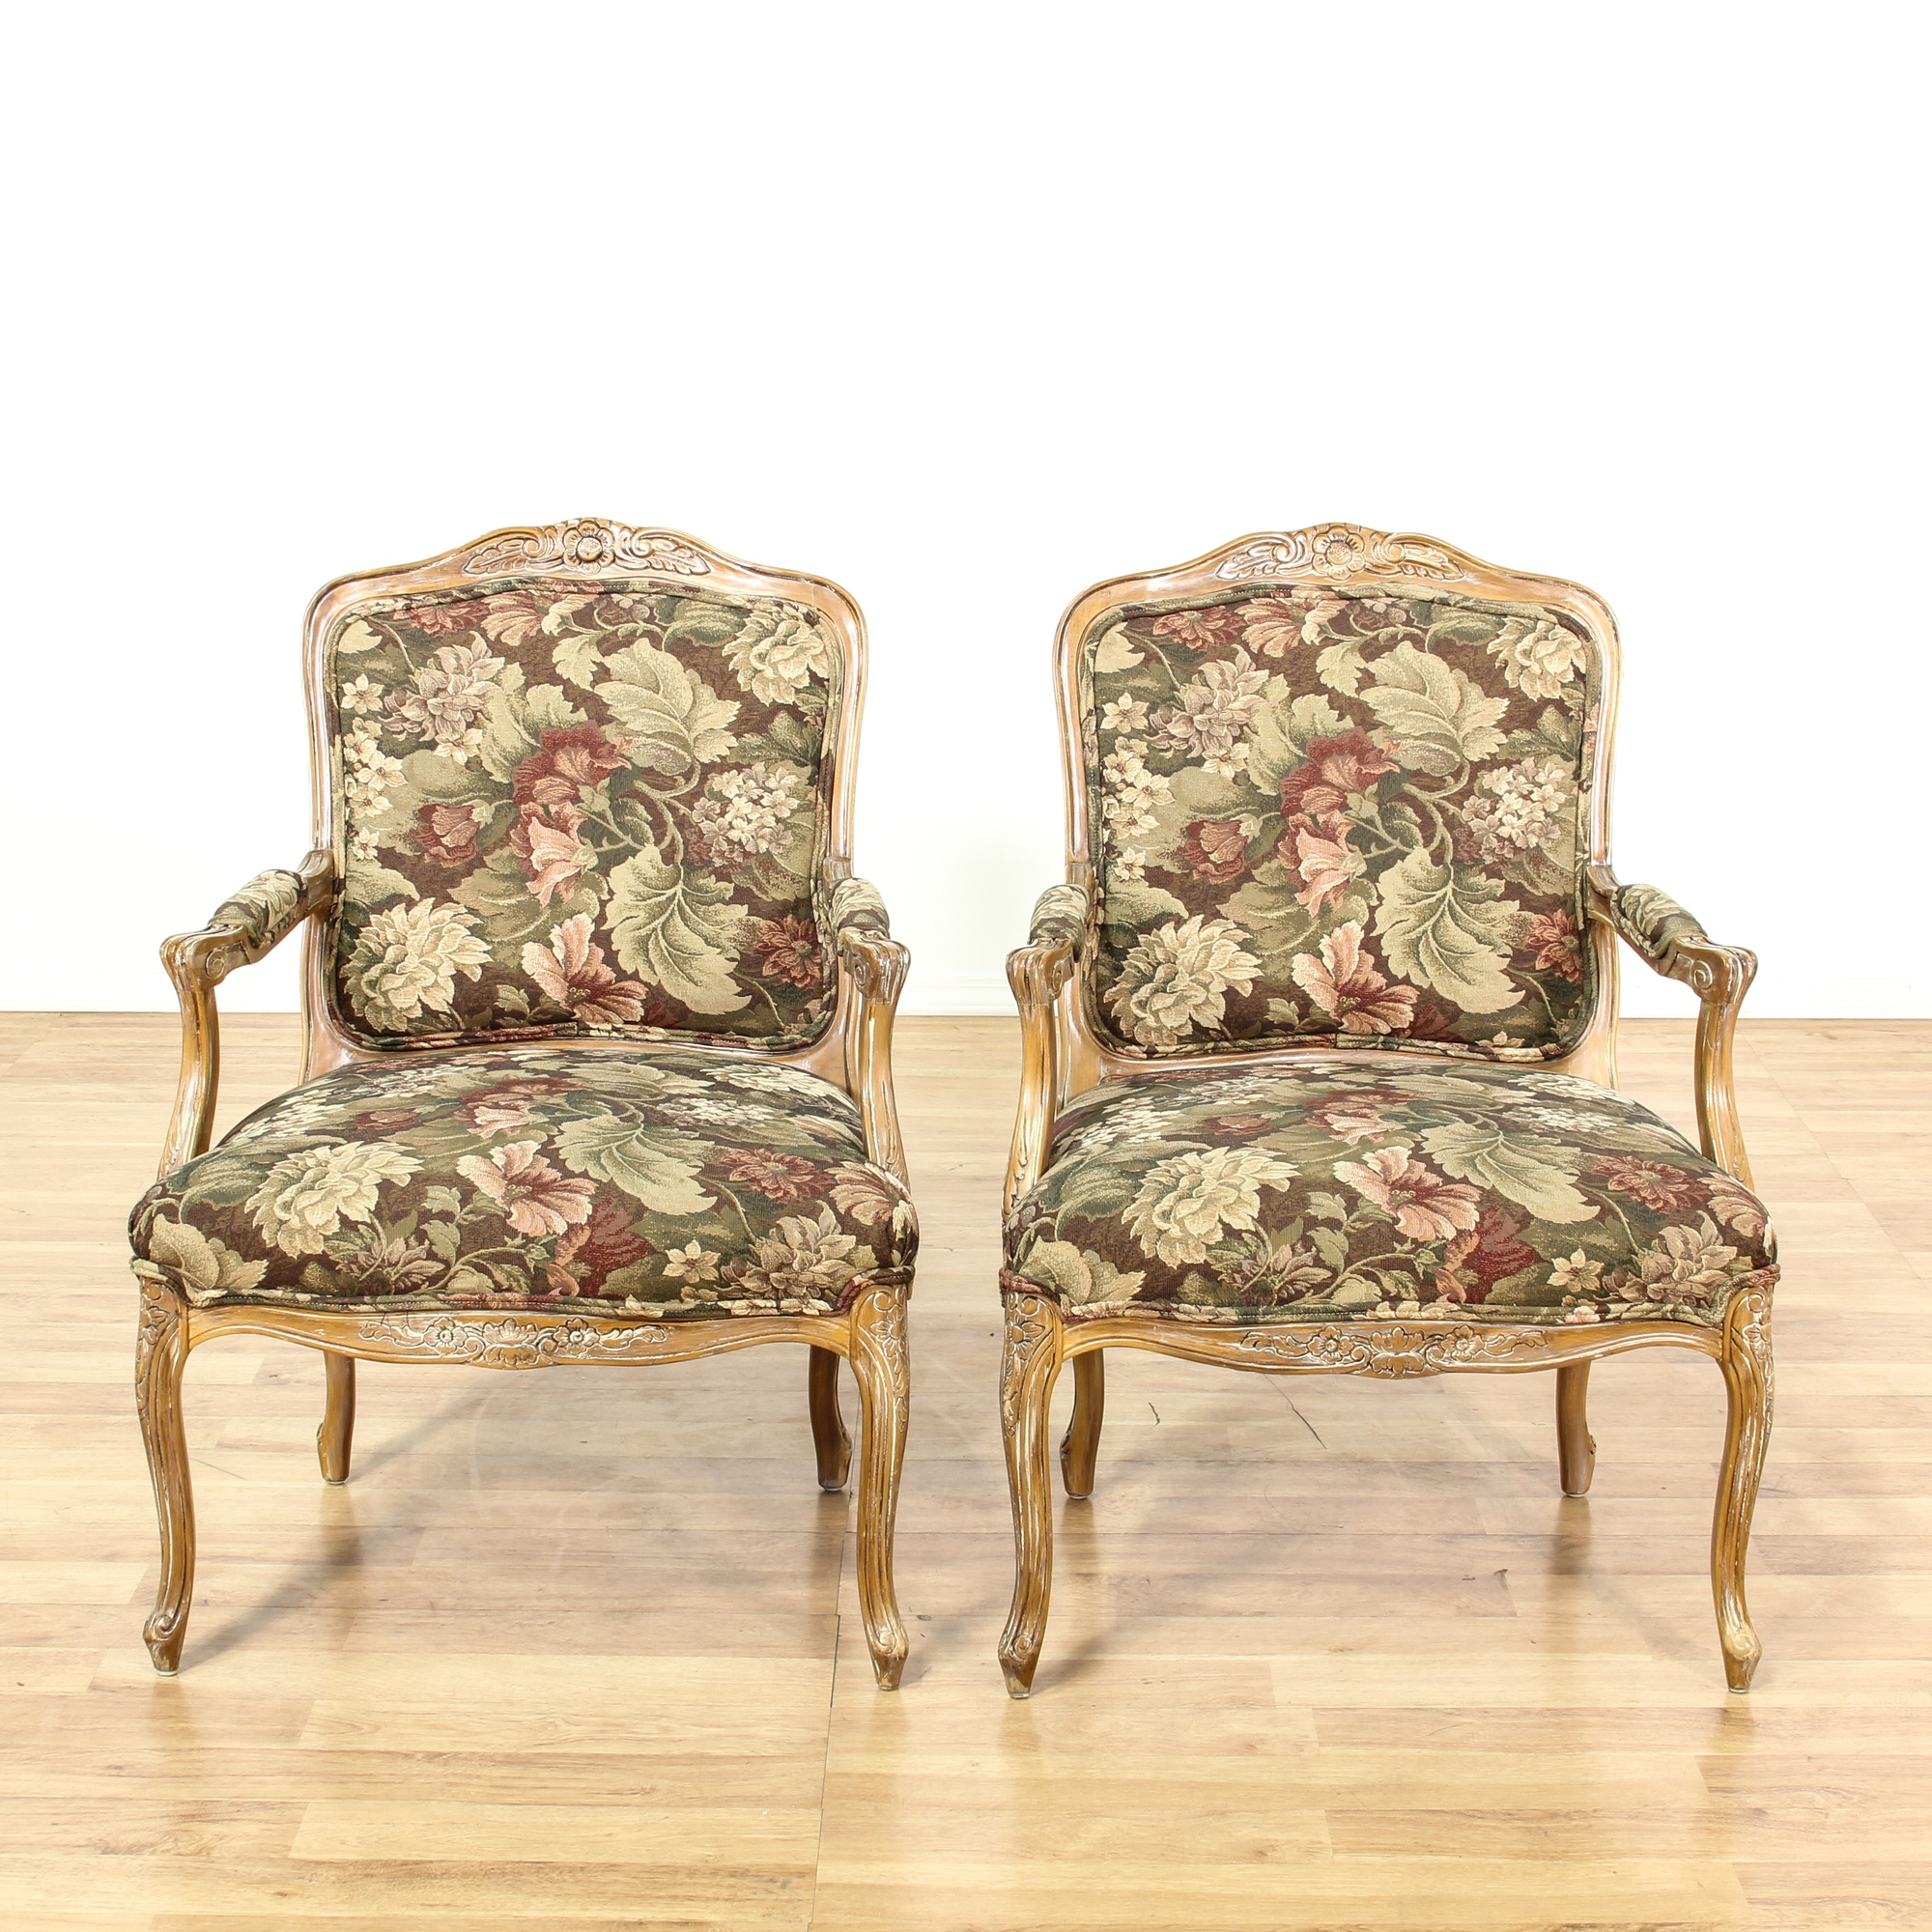 Vintage Looking Chairs: Pair Of Floral Louis XV Style Accent Chairs